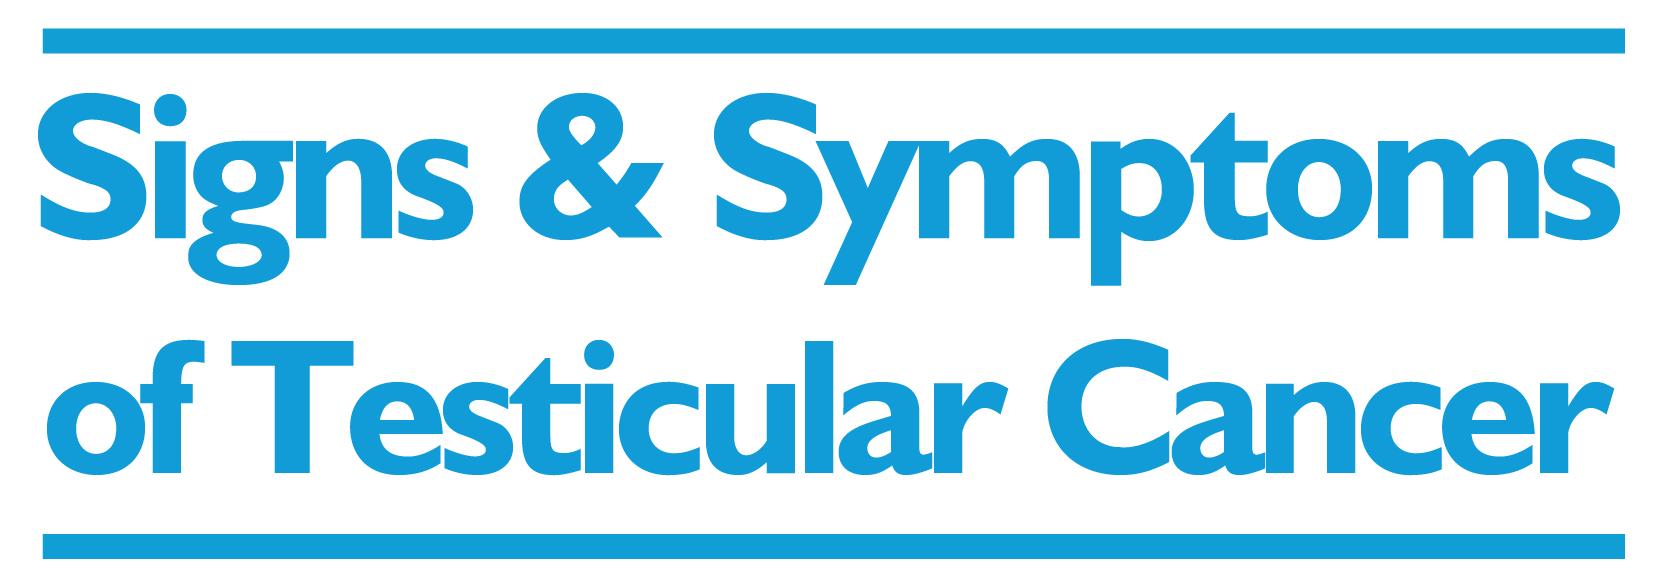 Signs and Symptoms - Testicular Cancer - A Rack Card